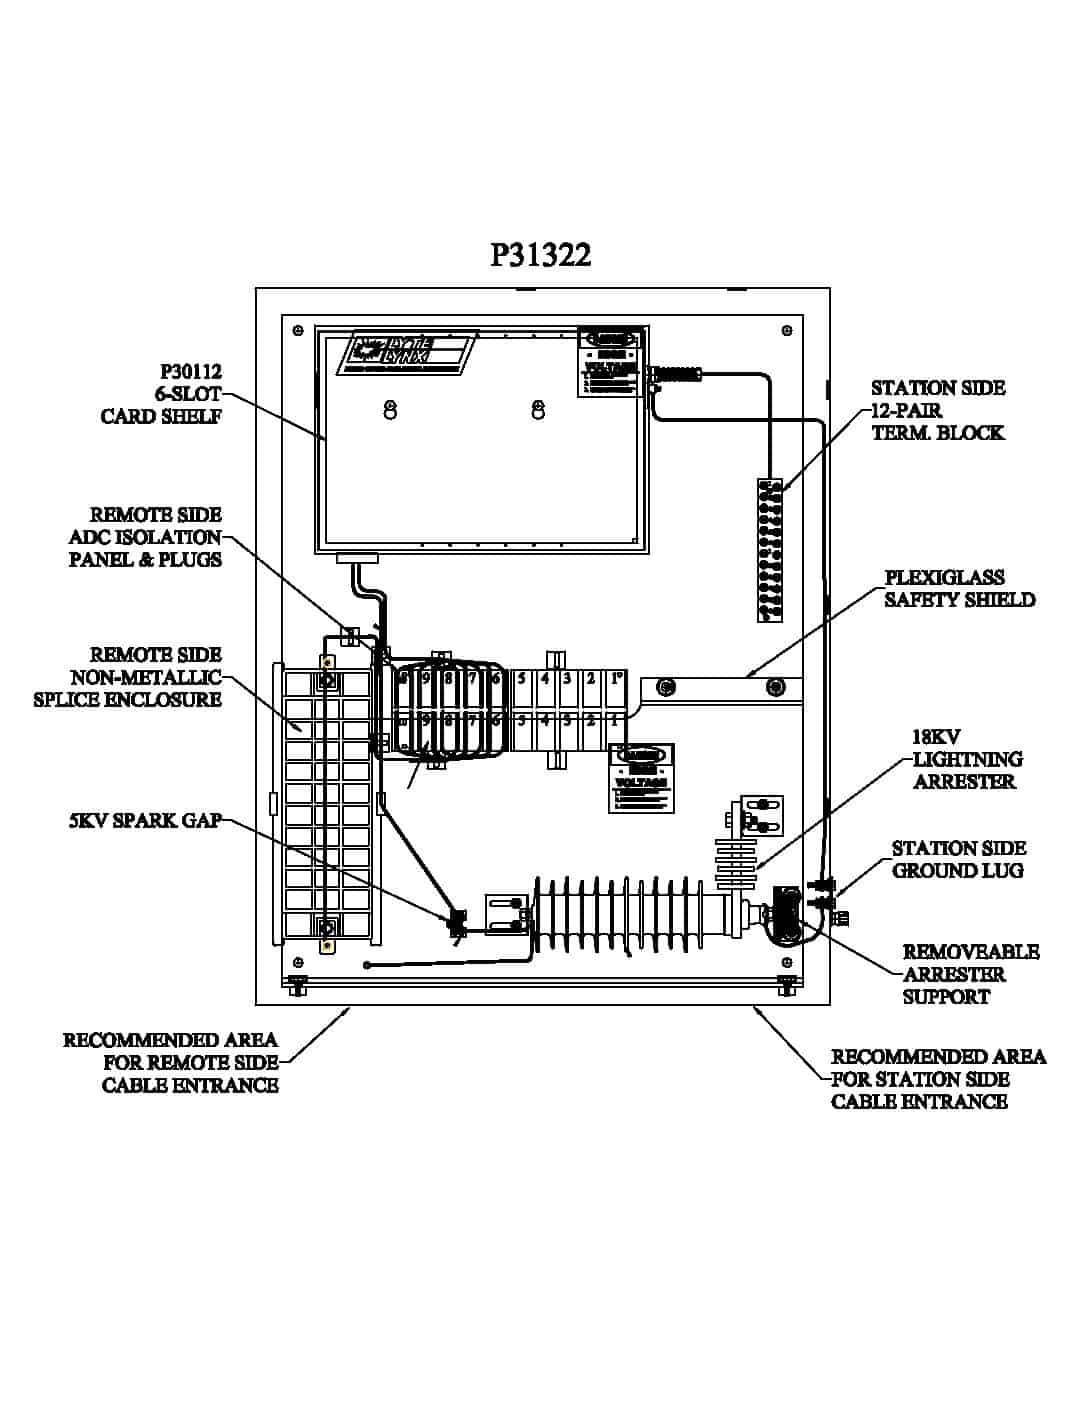 P31322 Turnkey Protection Packages – 6 slot PDF thumbnail